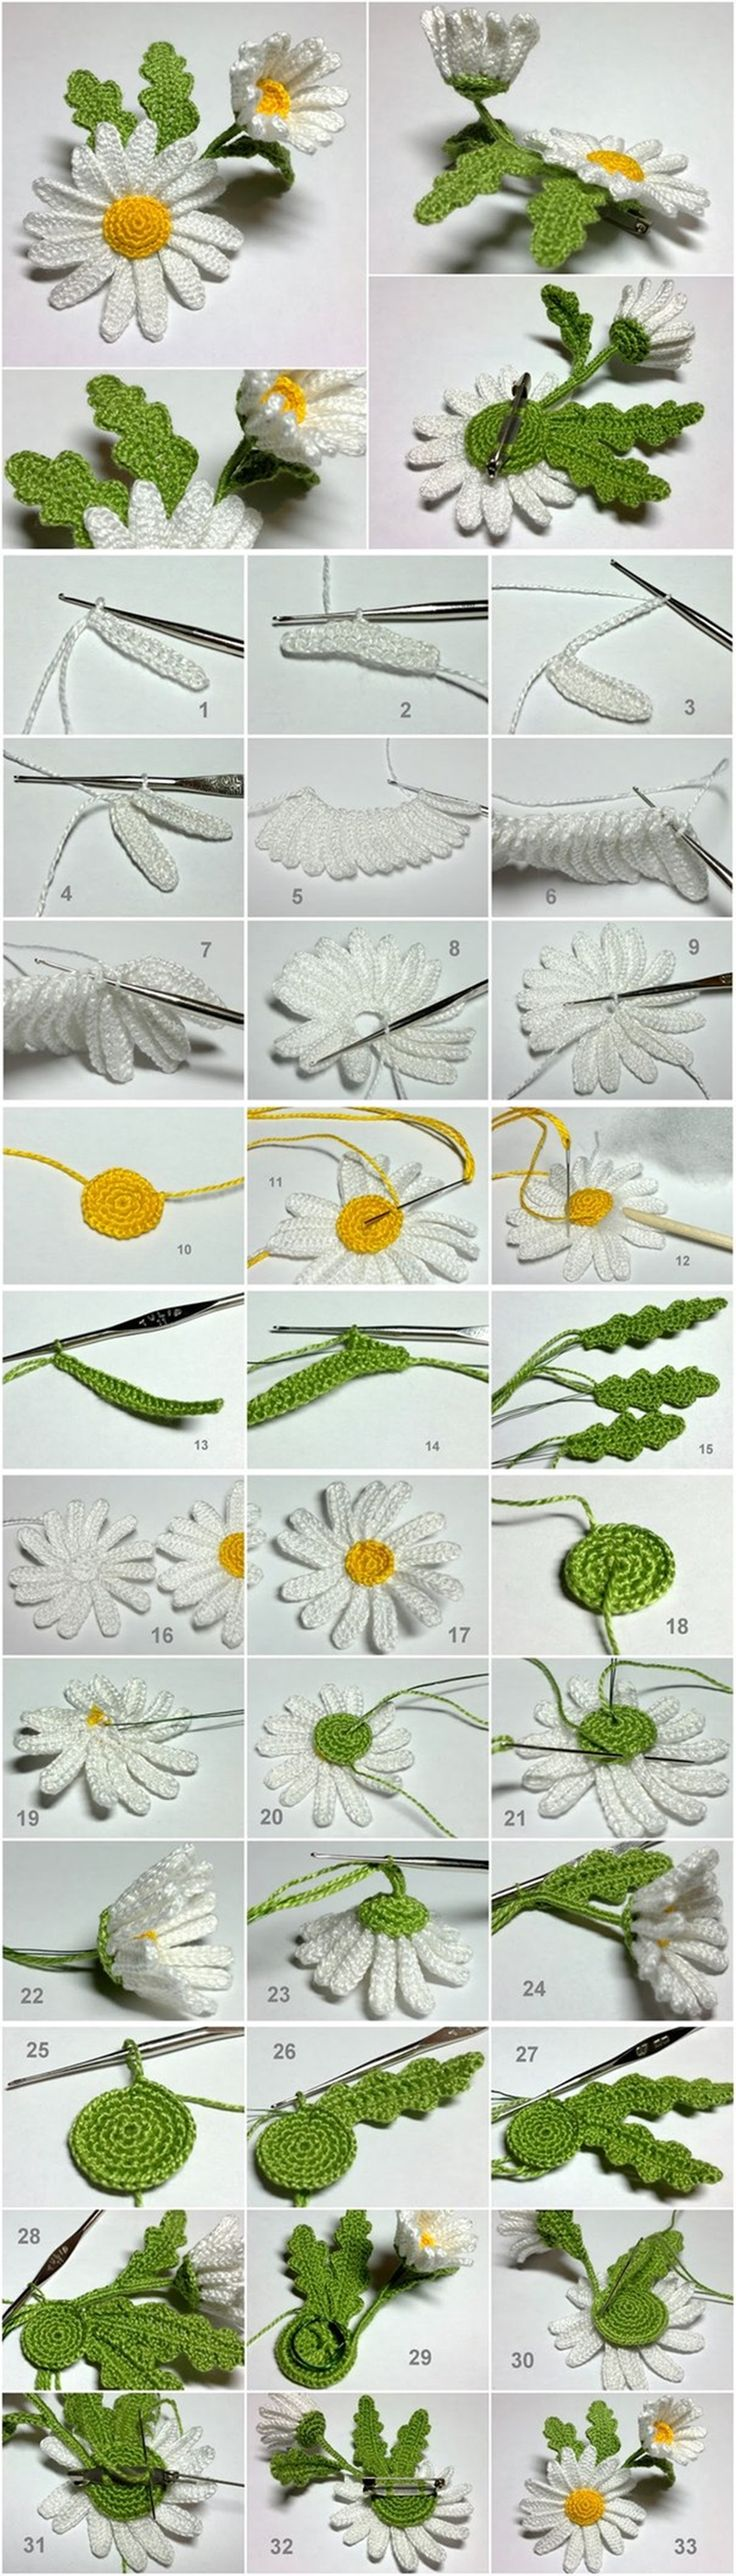 best images about Crochet flowers on Pinterest Free pattern